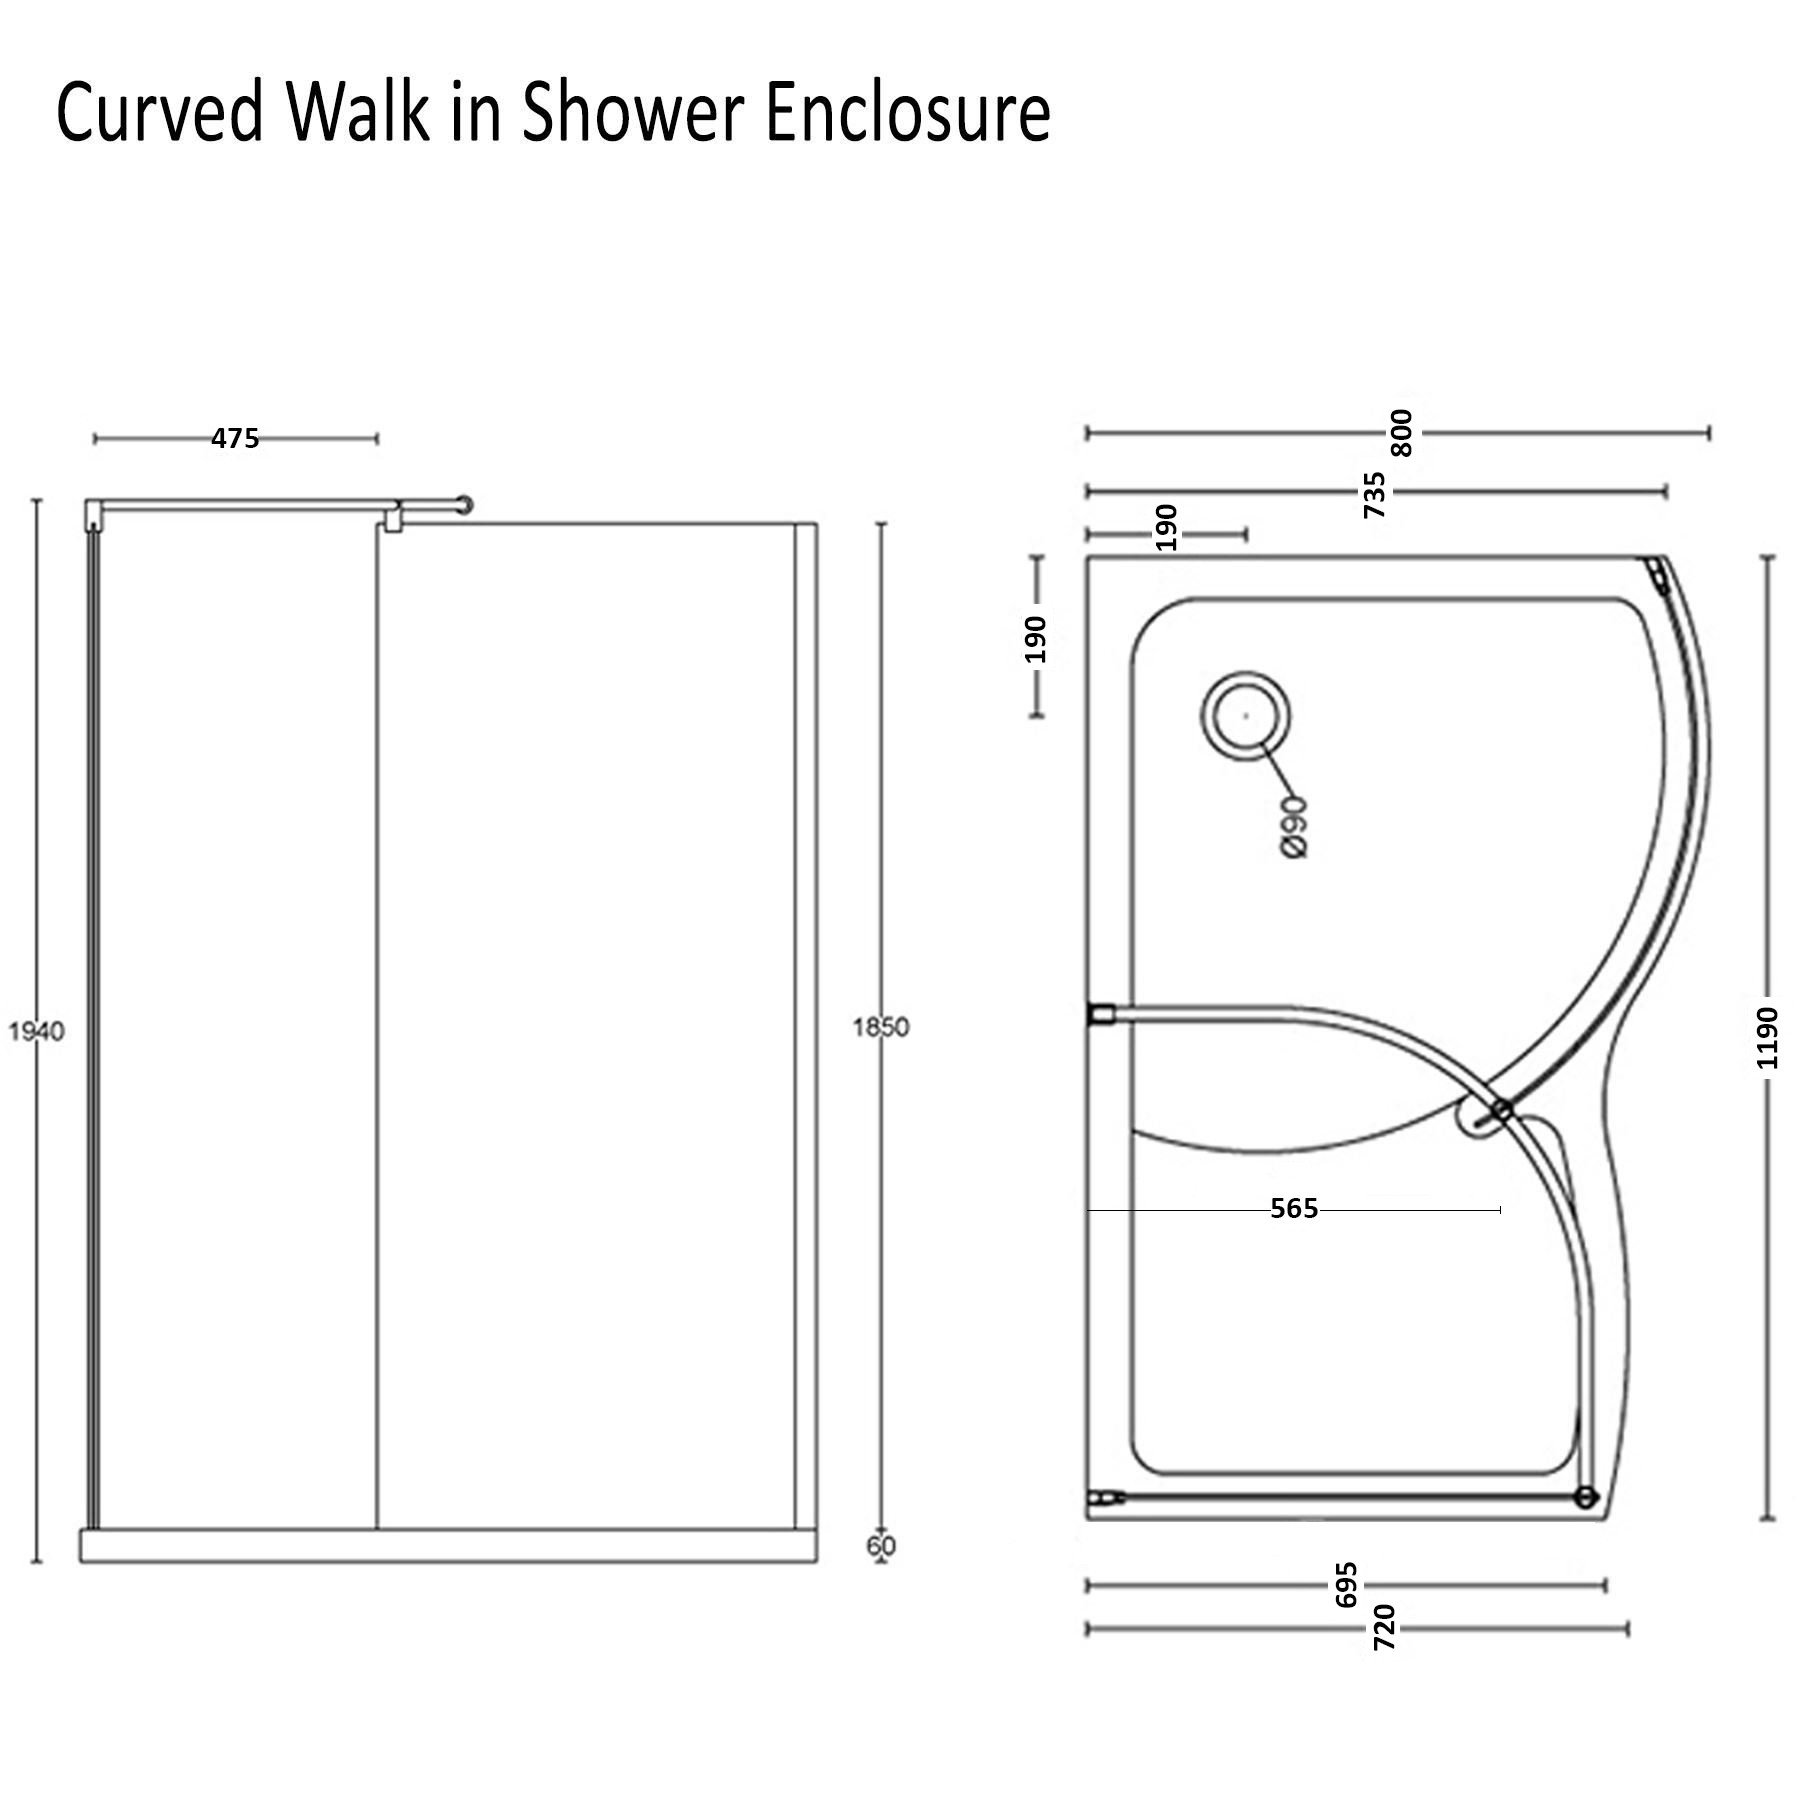 8mm curved walk in shower enclosure easy clean glass 1200x800mm right hand tray ebay - Walk in glass shower enclosures ...